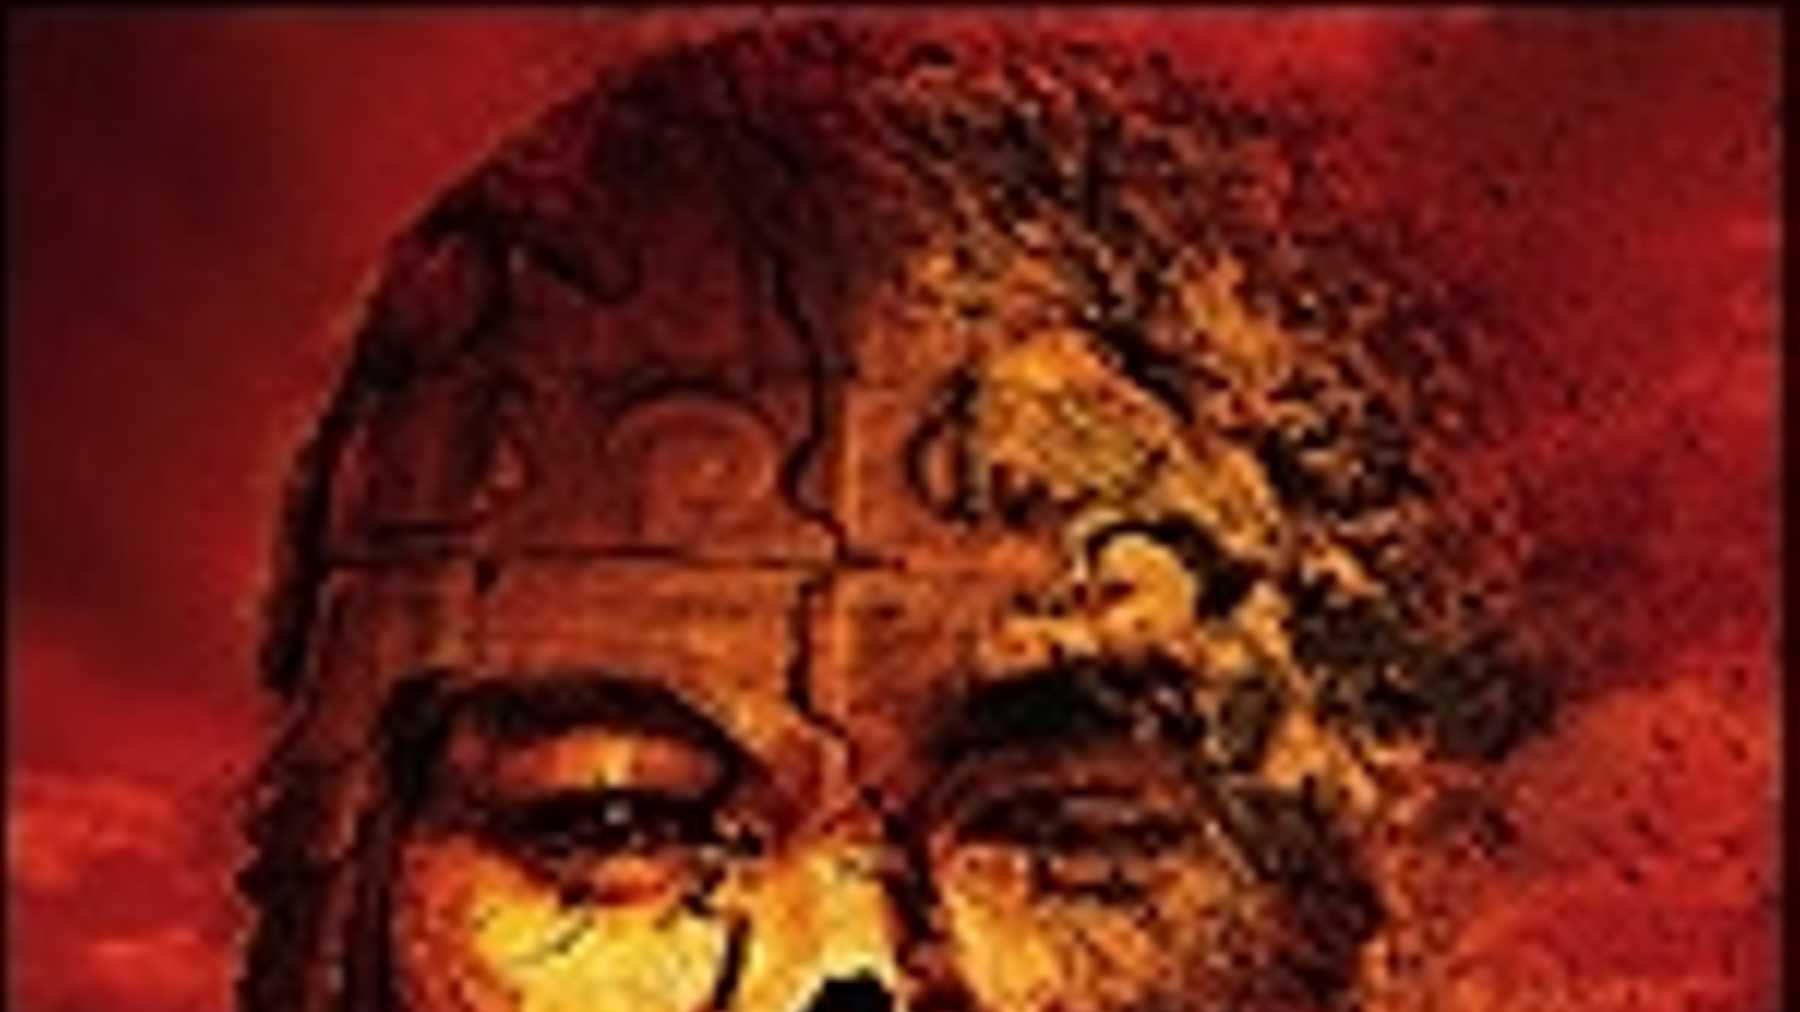 Angry Painter Watch Online full mummy 3 trailer online | movies | empire